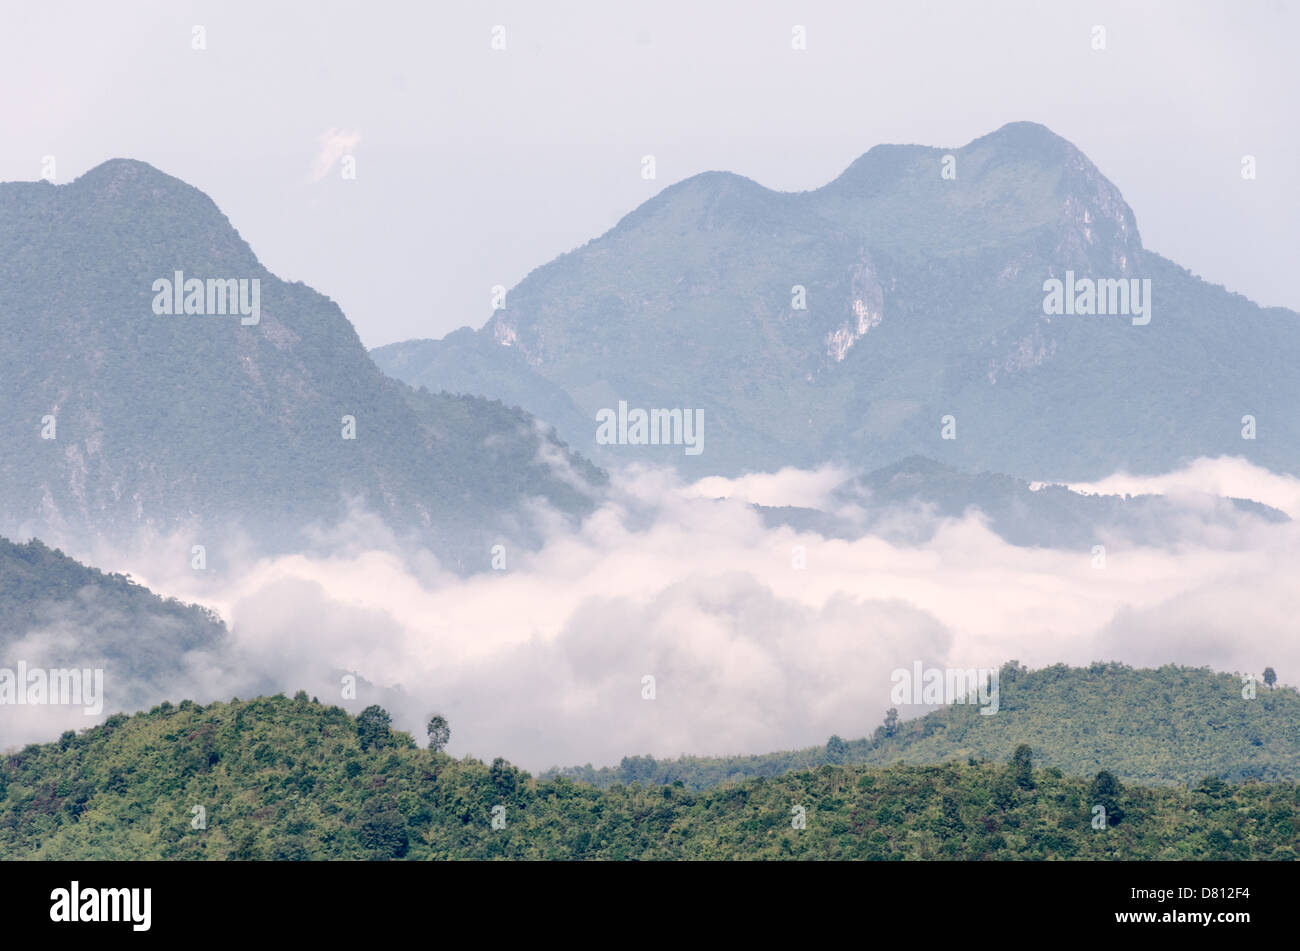 Terrain in the rugged mountainous region of northern Laos. - Stock Image